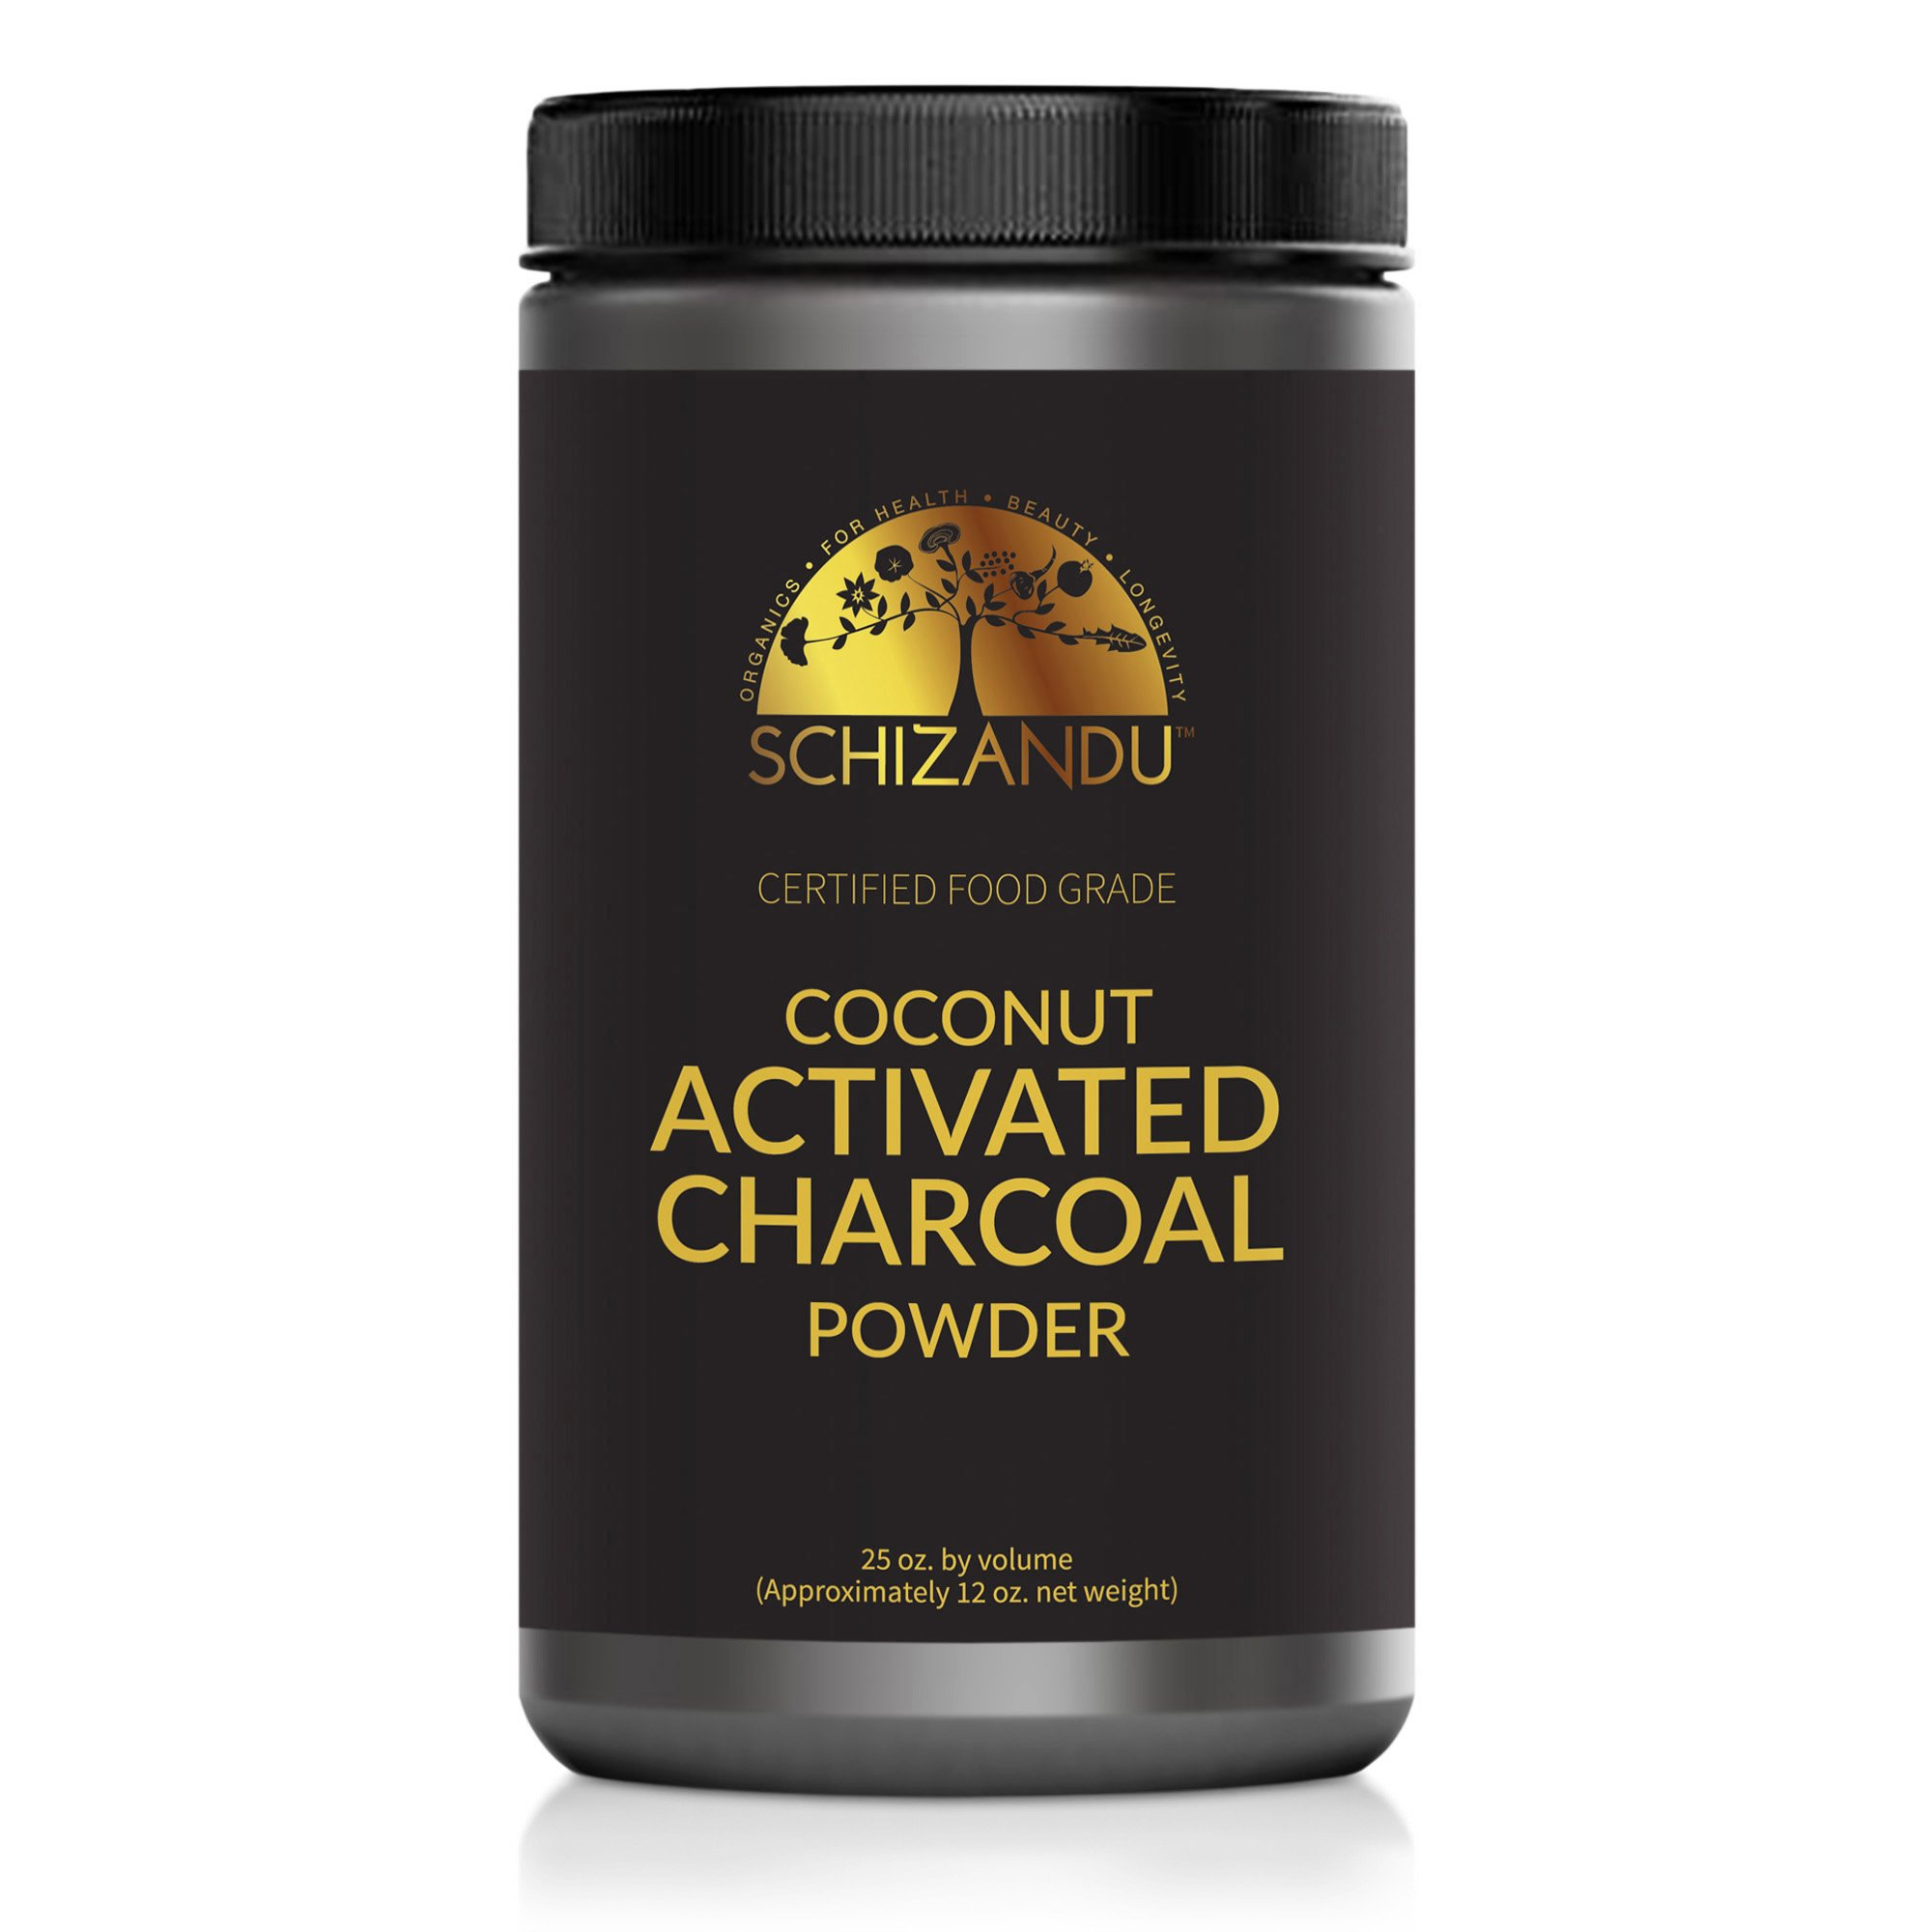 coconut_actiavated_charcoal_3d_front_1024x1024_2x.jpg